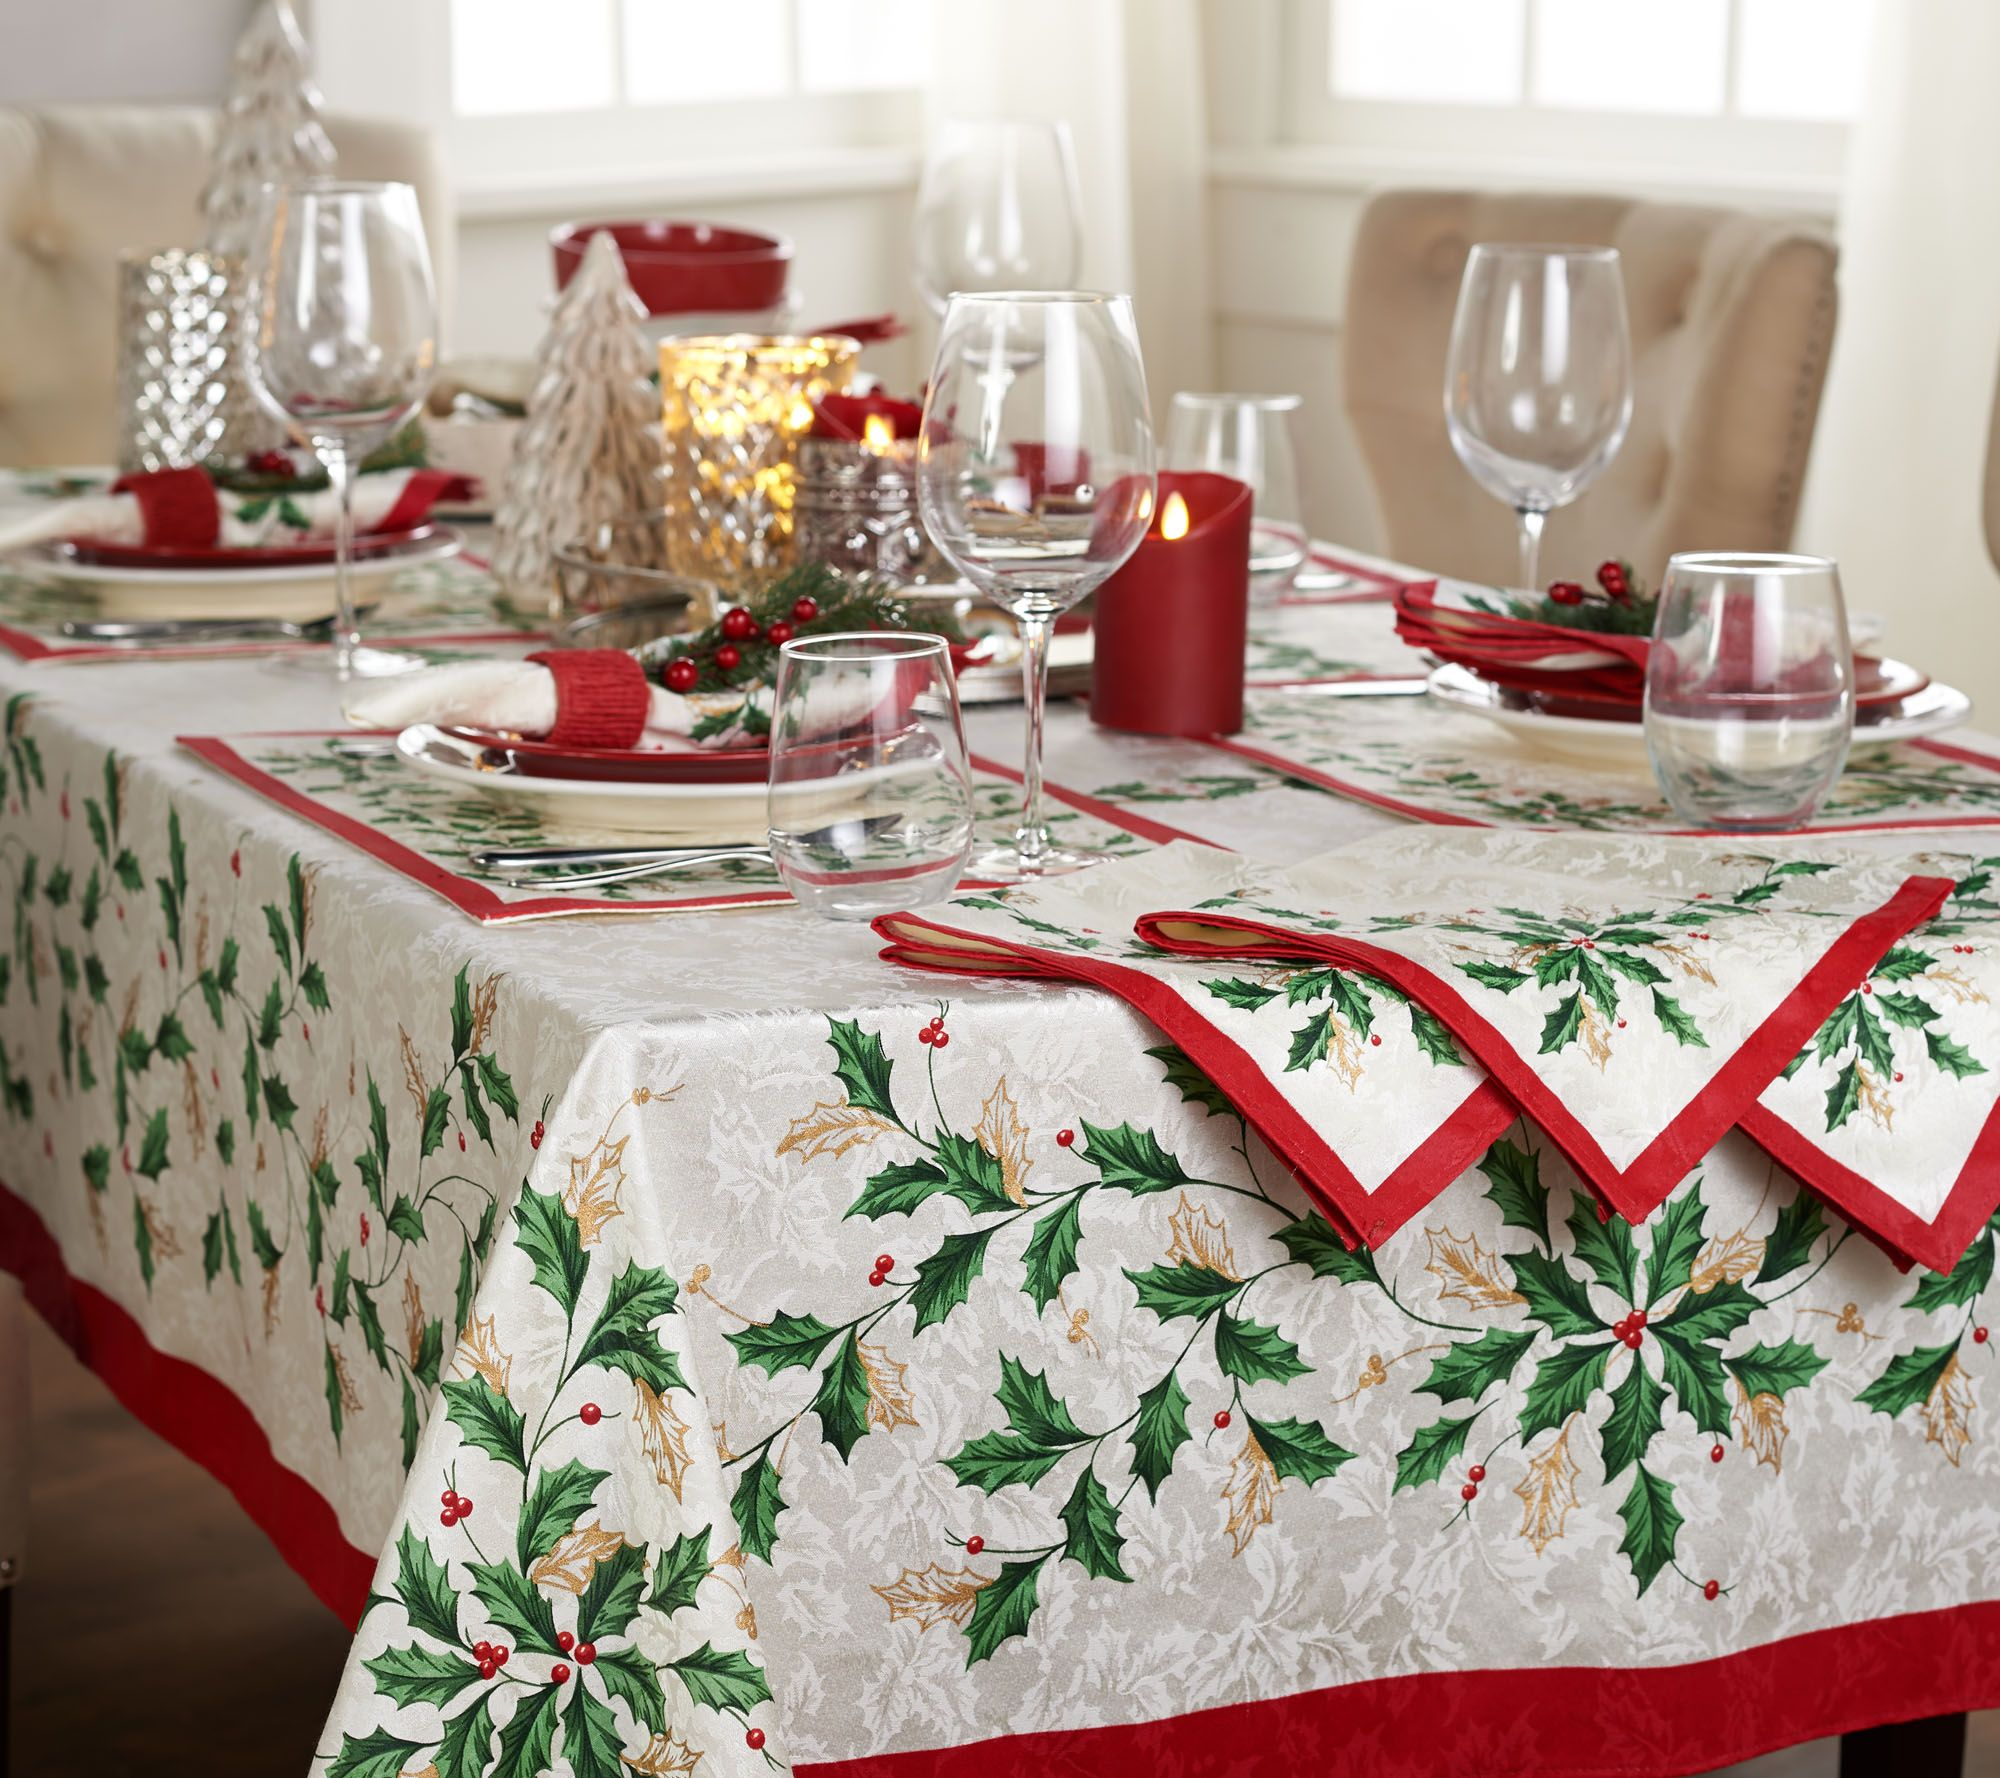 Christmas Tablecloths Australia Fresh Free Lenox Christmas Tablecloths And Napkins 20349 With